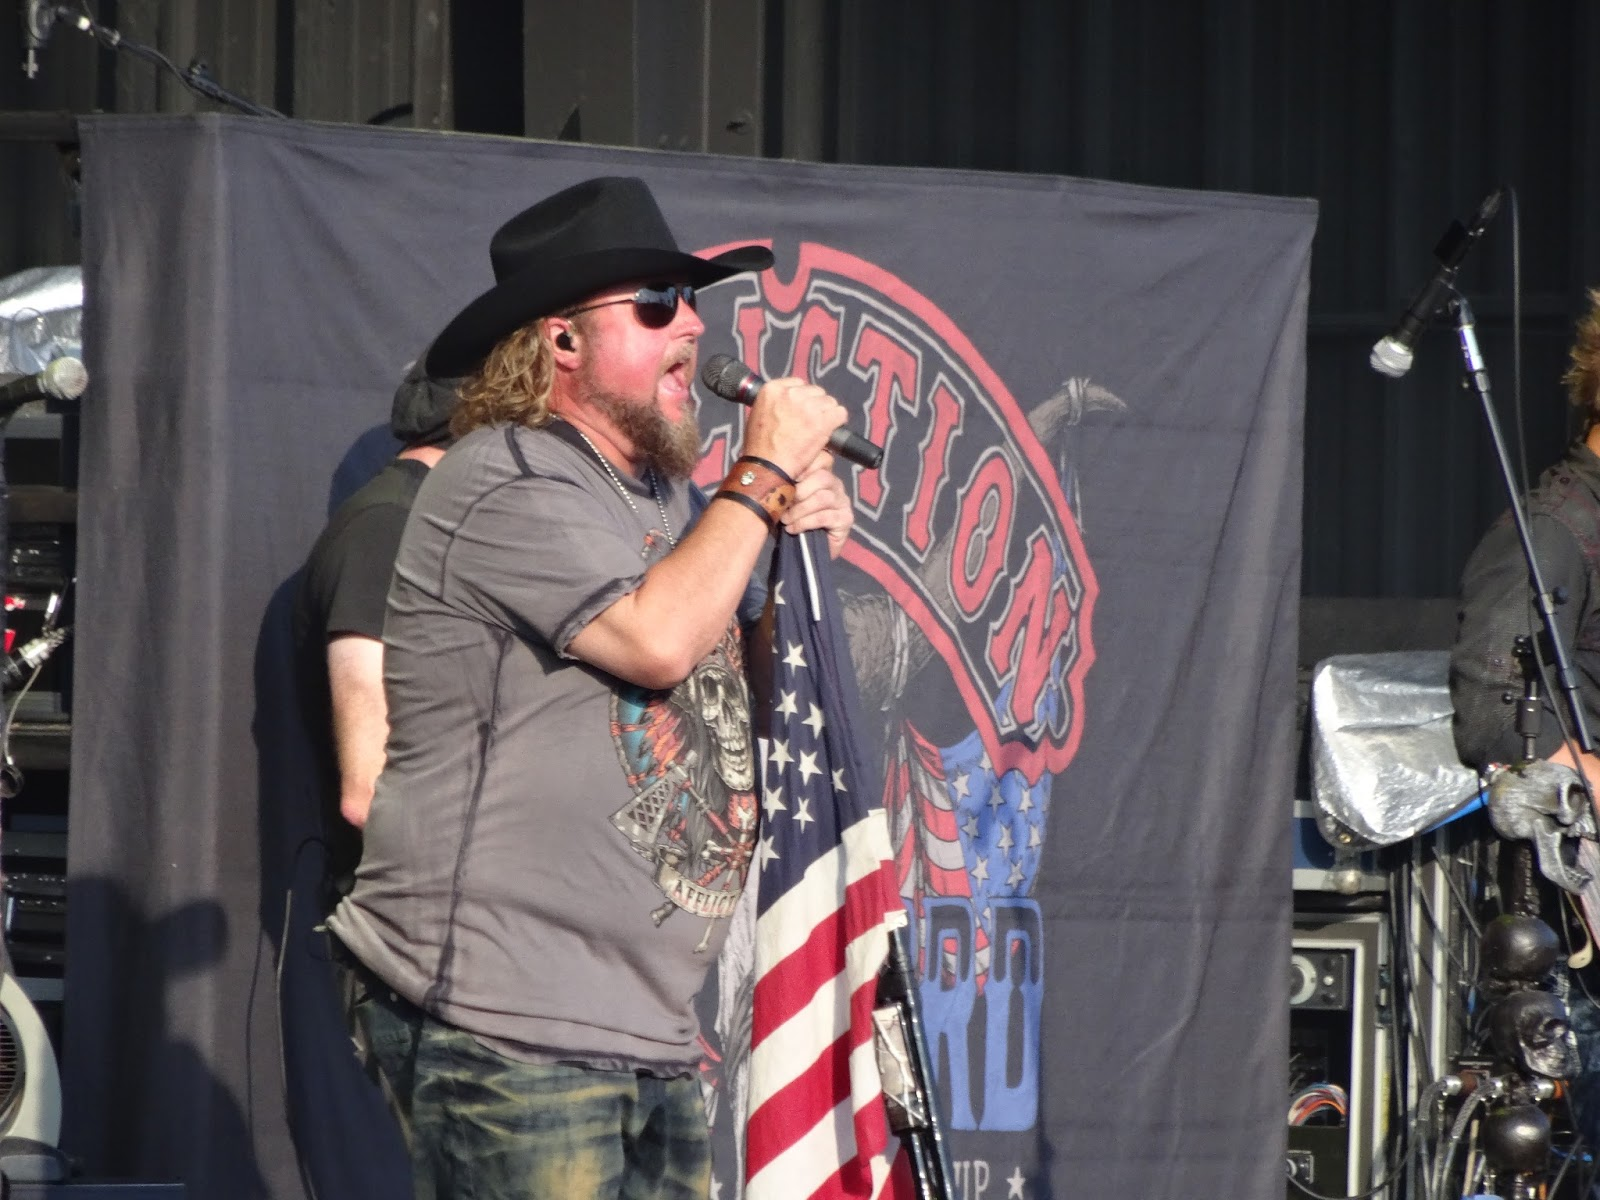 Colt ford is one of the biggest stars in the country rap subgenre he is very patriotic and not afraid to show it throughout his performance